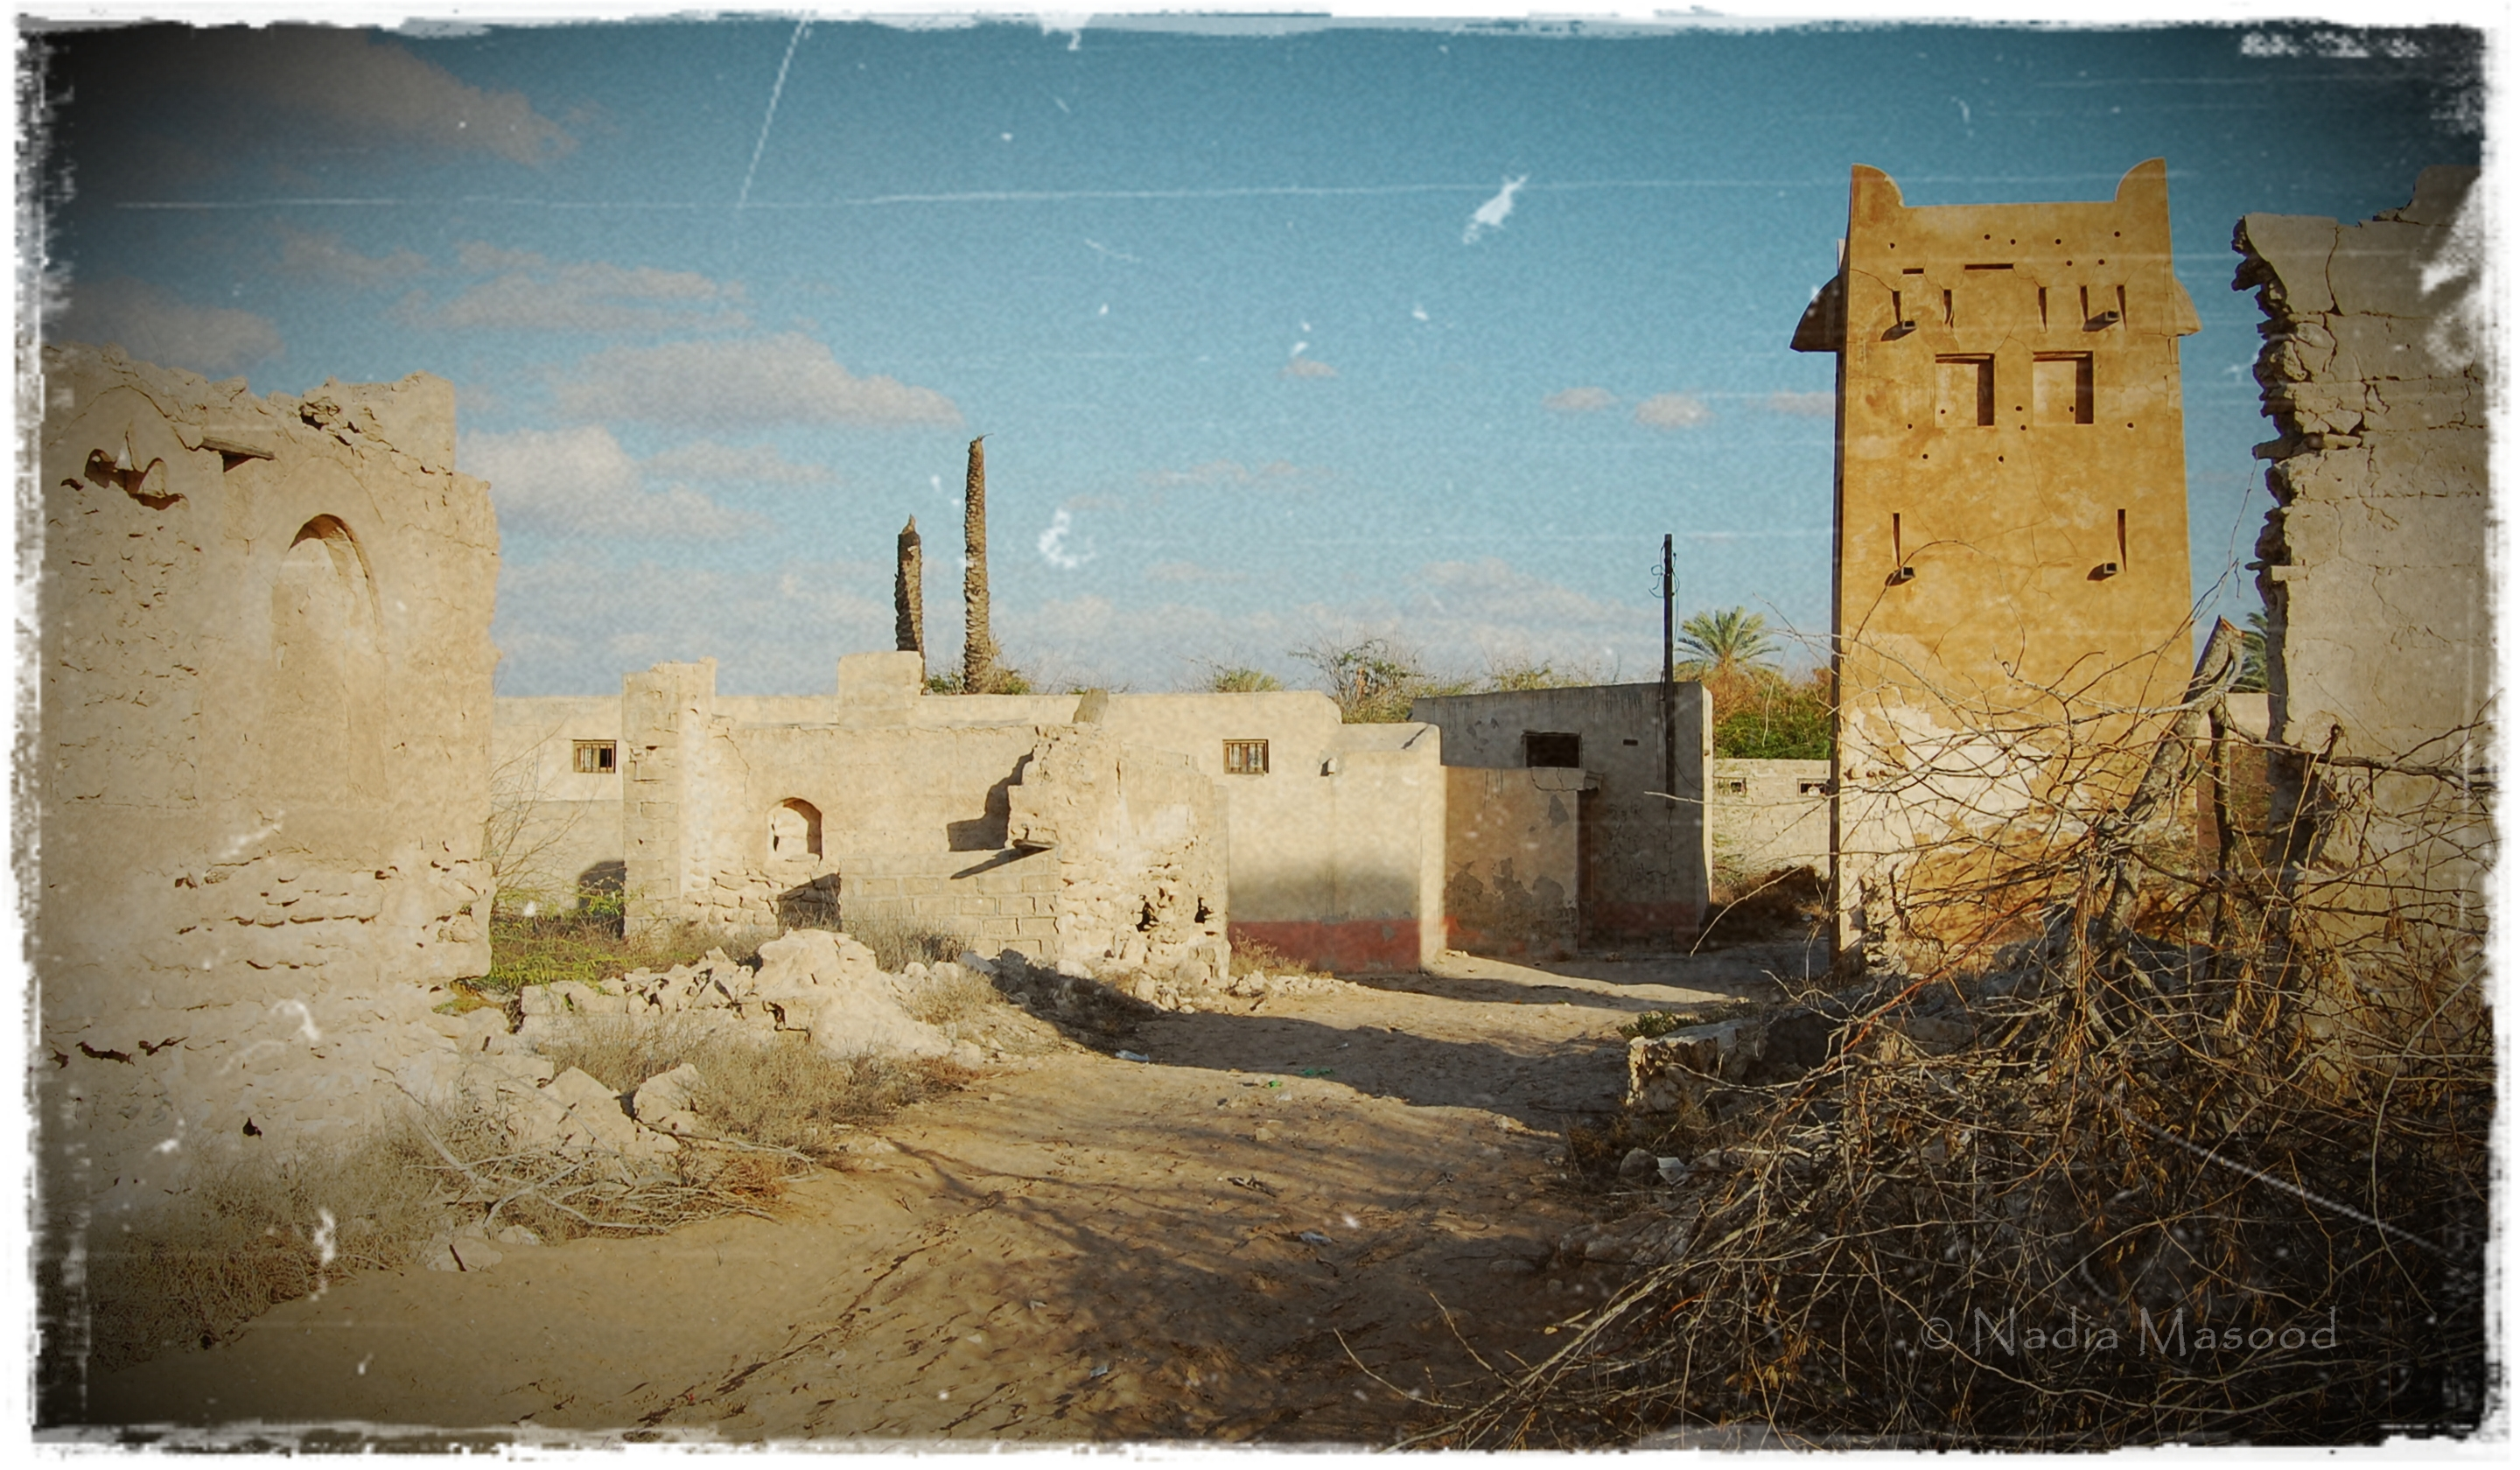 Jazirat Al Hamra Ghost Town Or A Crumbling Piece Of